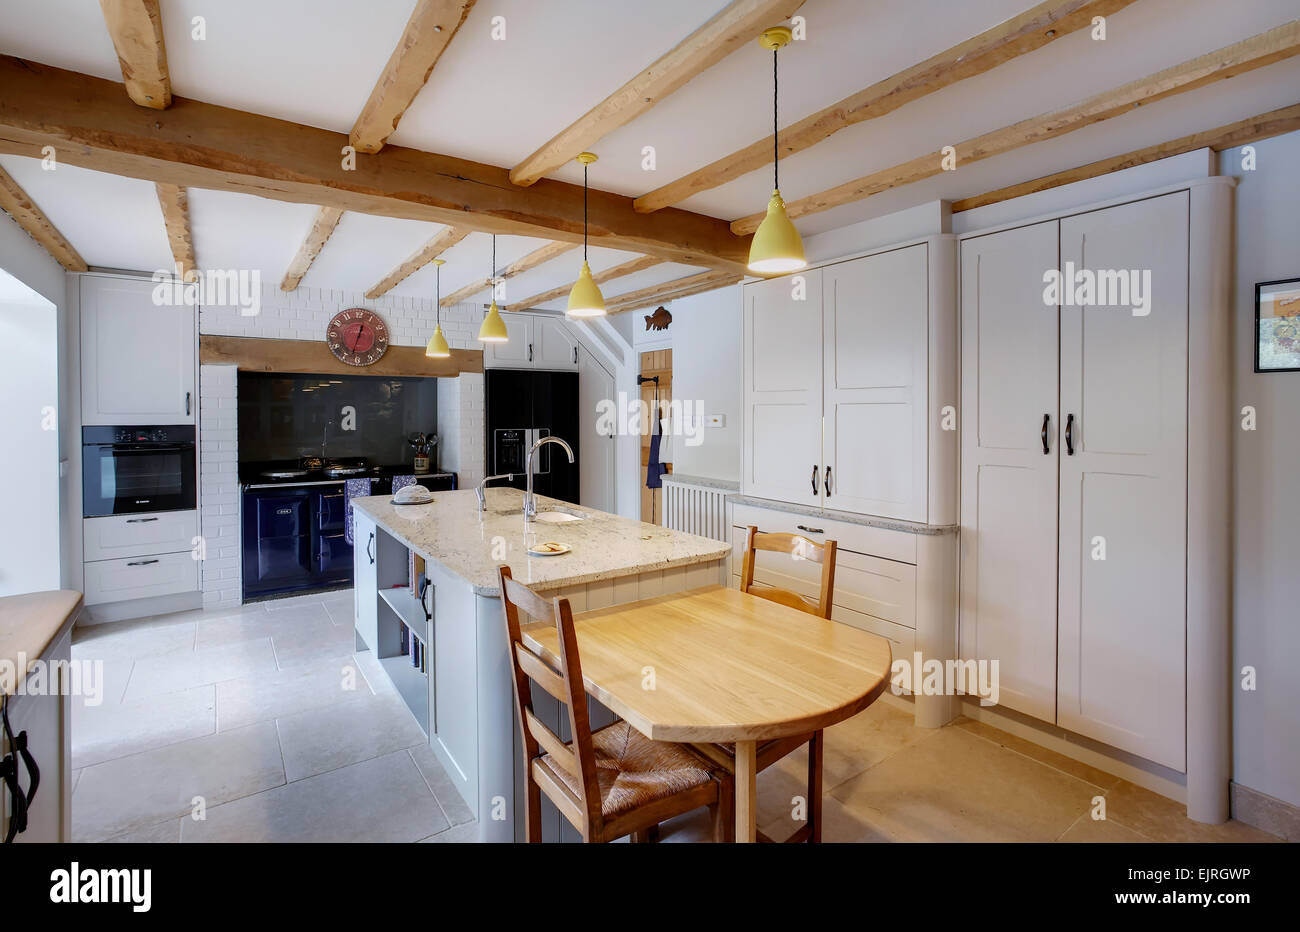 A traditional style kitchen inside a farmhouse in the UK. Stock Photo